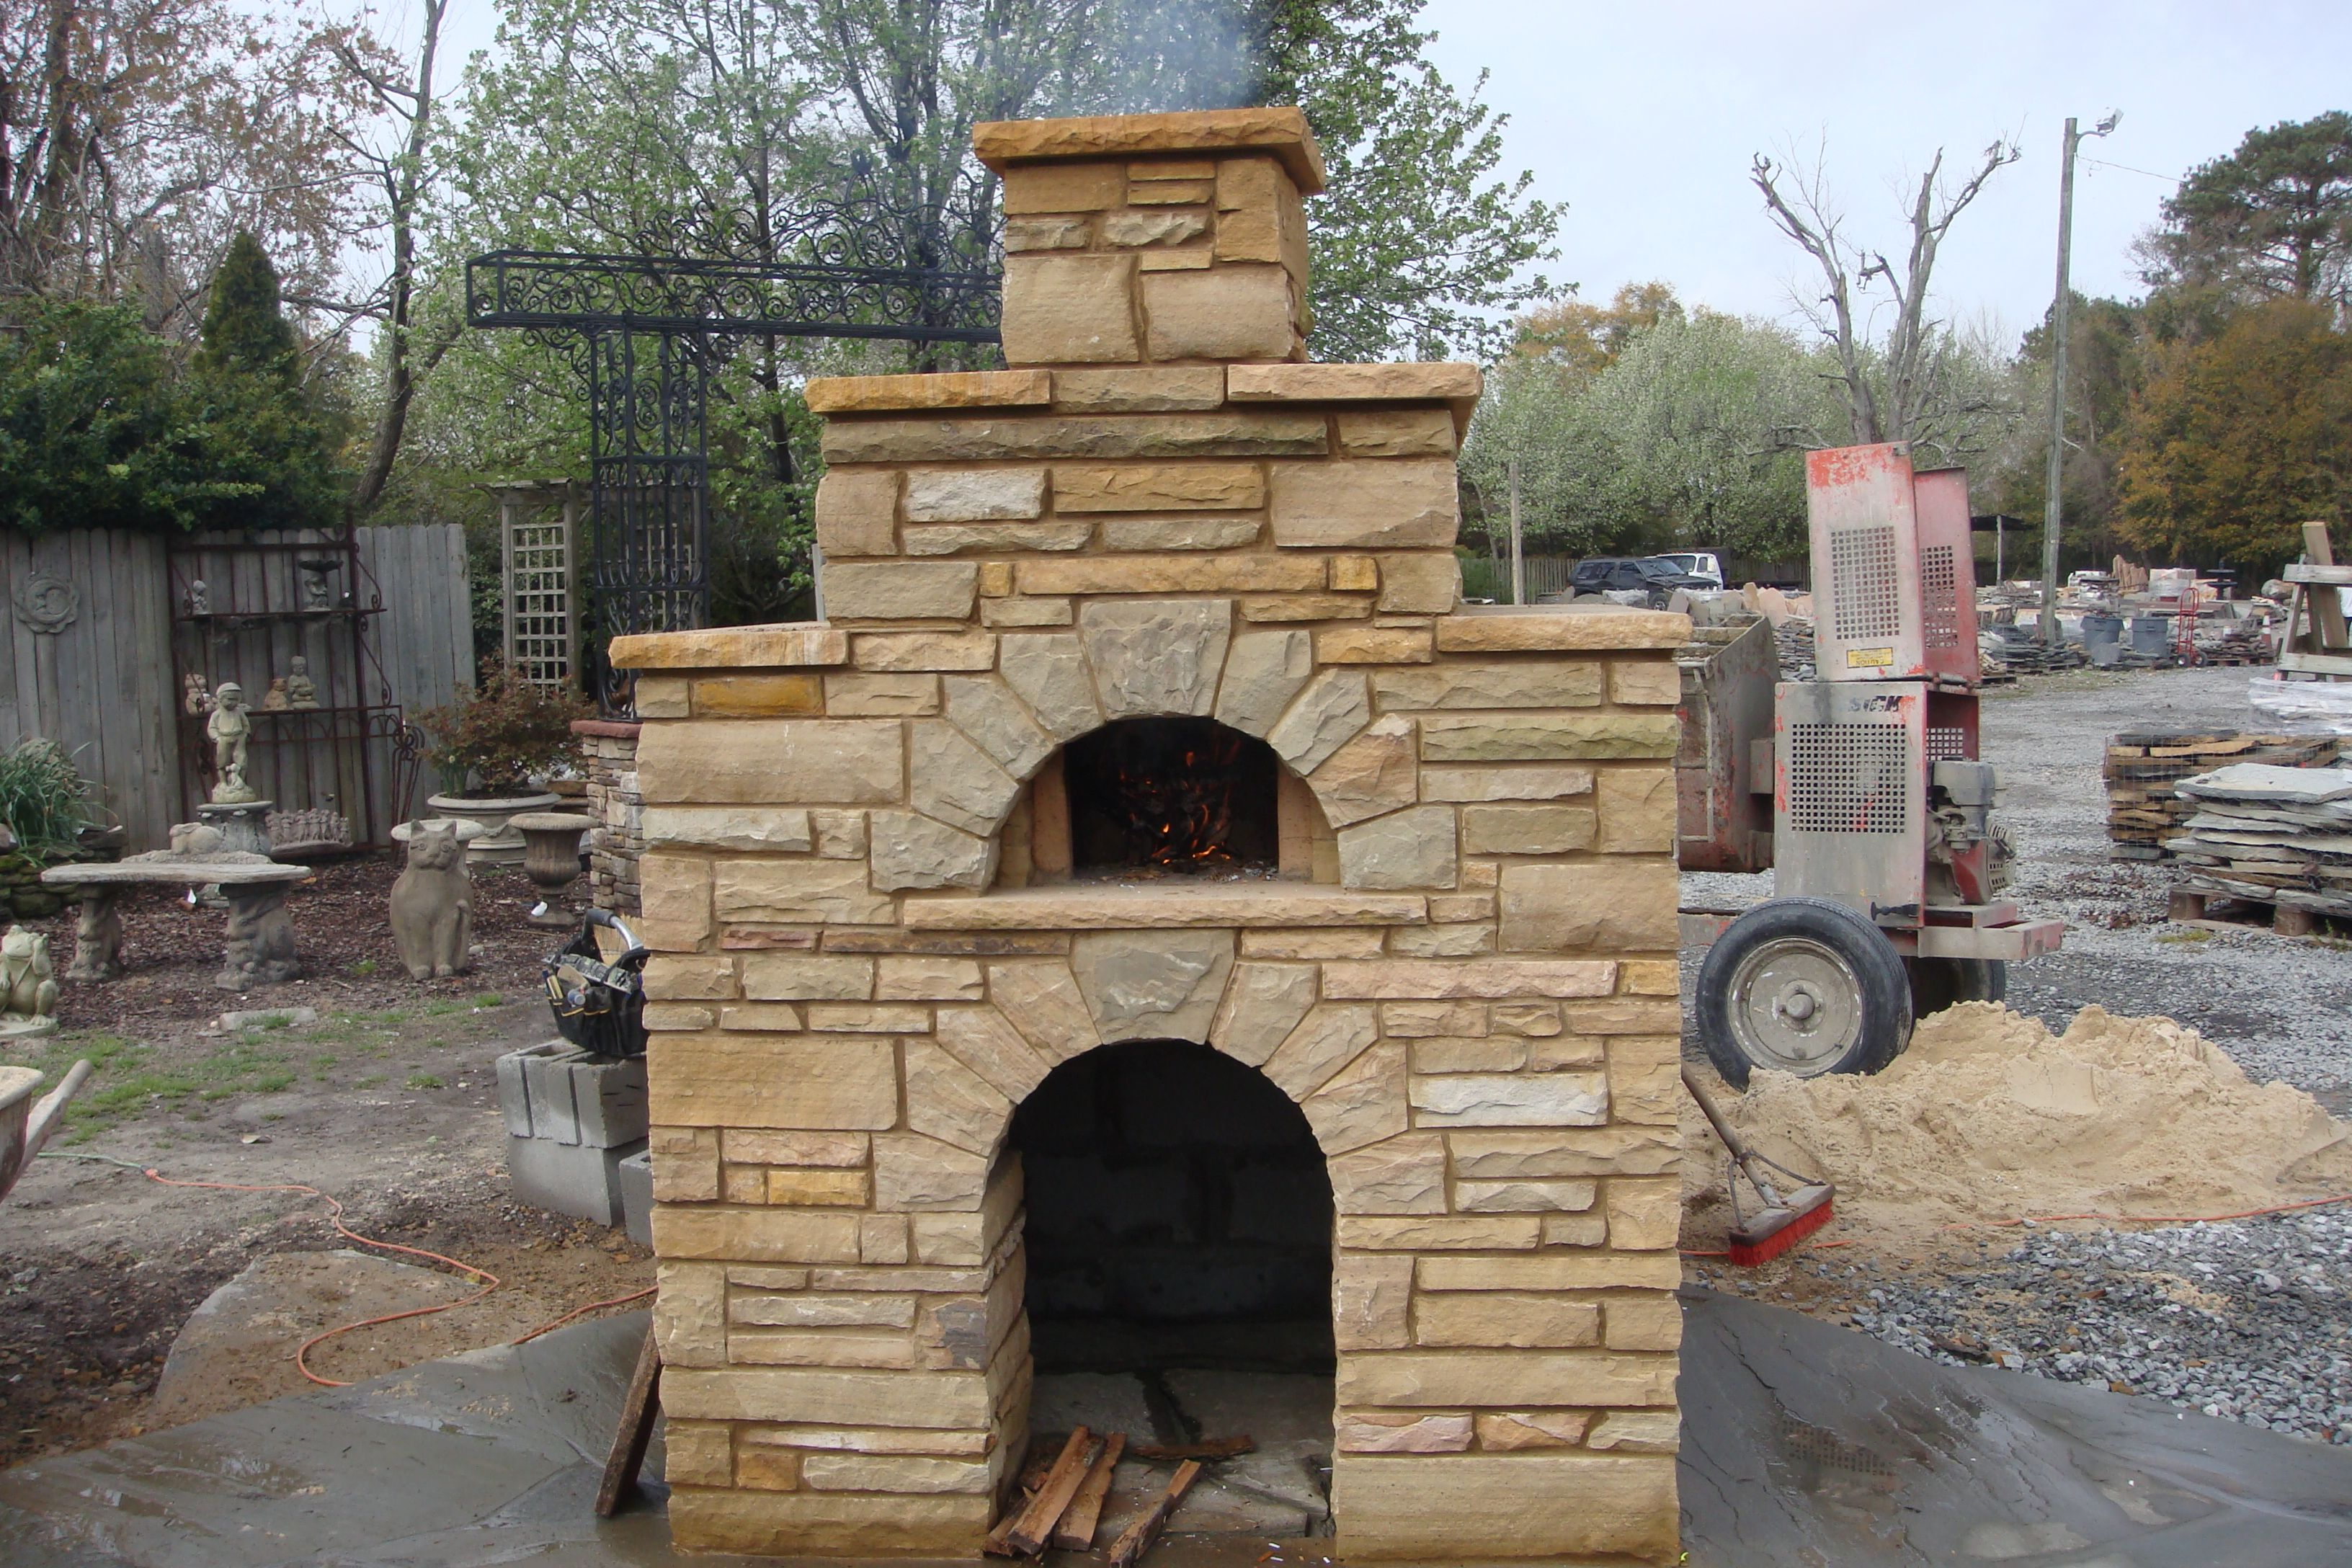 Outdoor Fireplace With Pizza Oven Kits Diy Fireplace Bake Oven Plans Outdoor Pizza Kit Outdoor Fireplace Kits